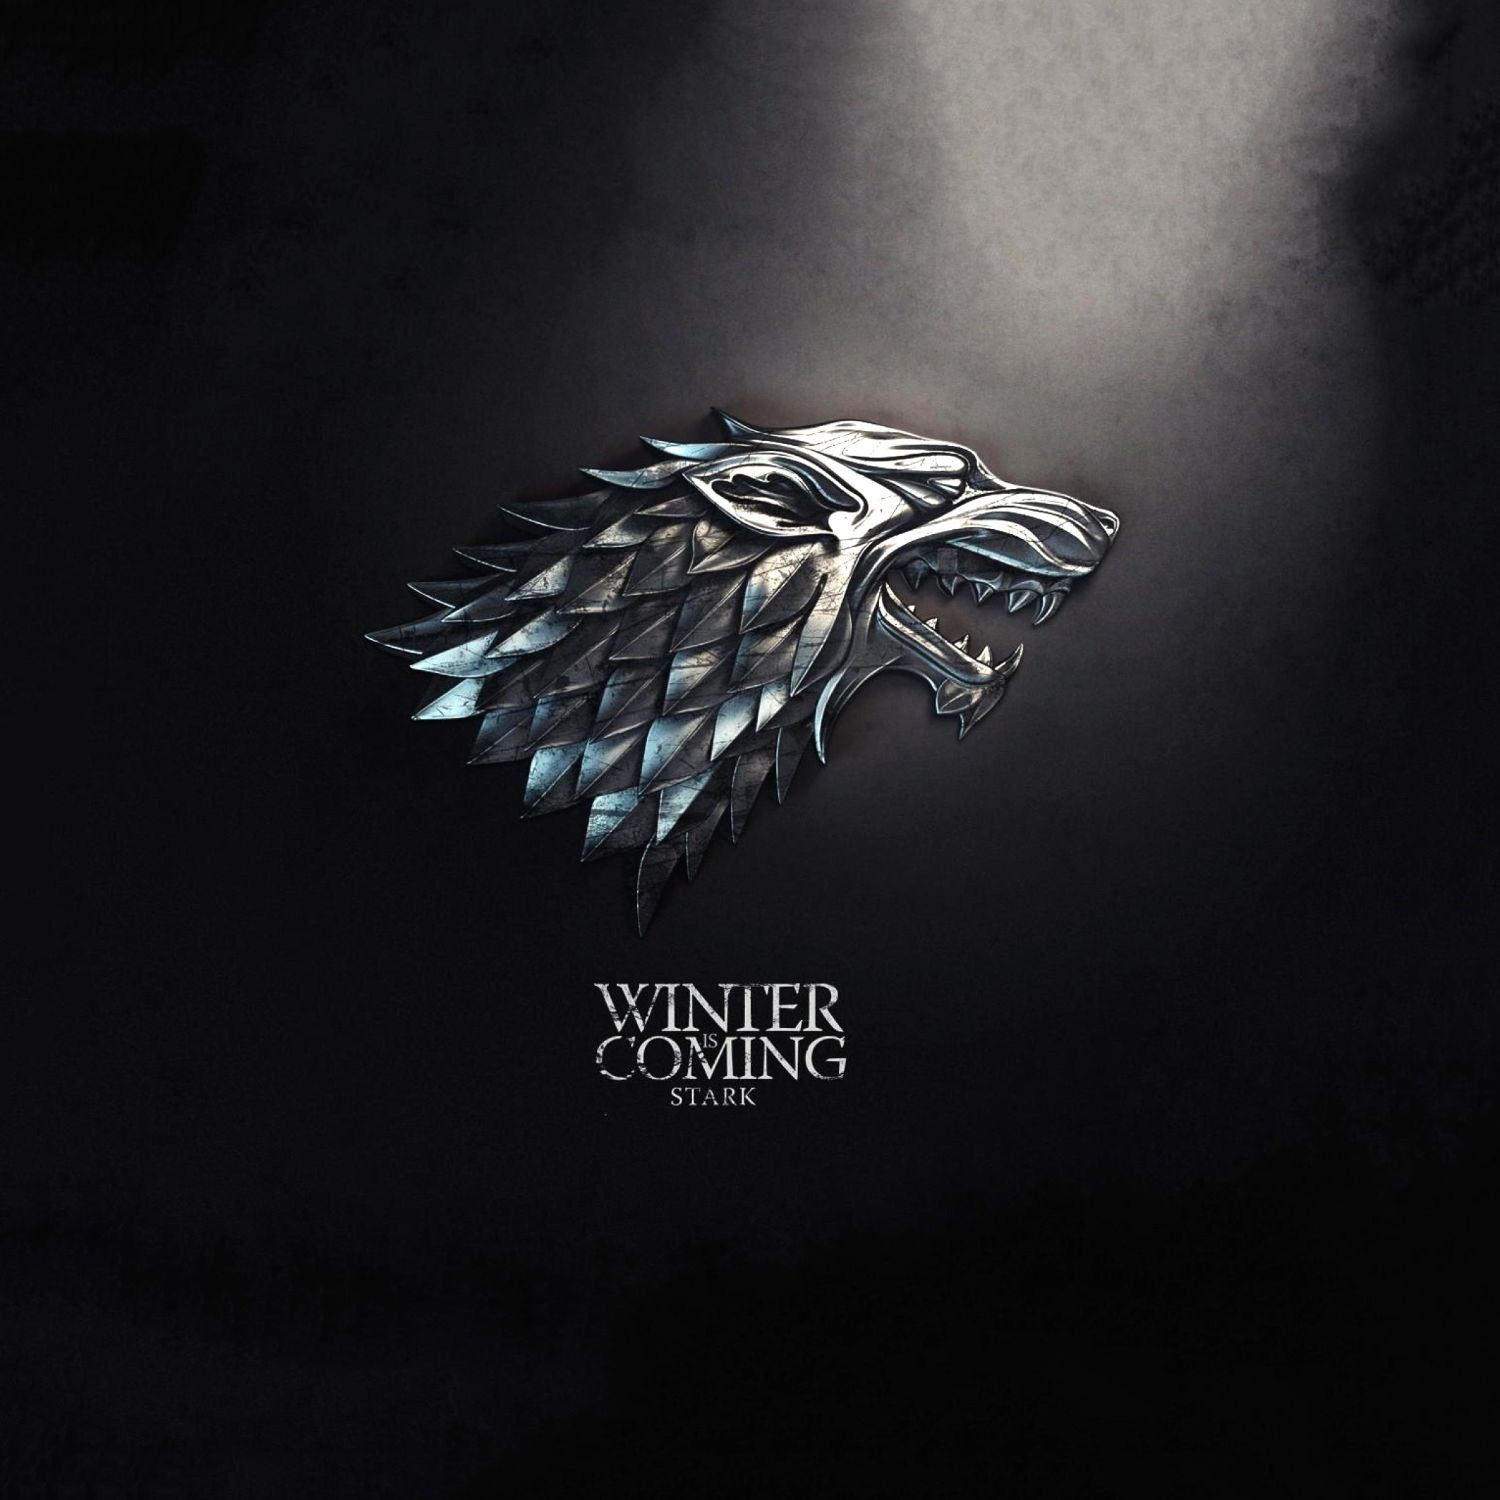 Elegant Art From Game Of Thrones   Direwolf Sigil Of House Stark   Winter Is Coming